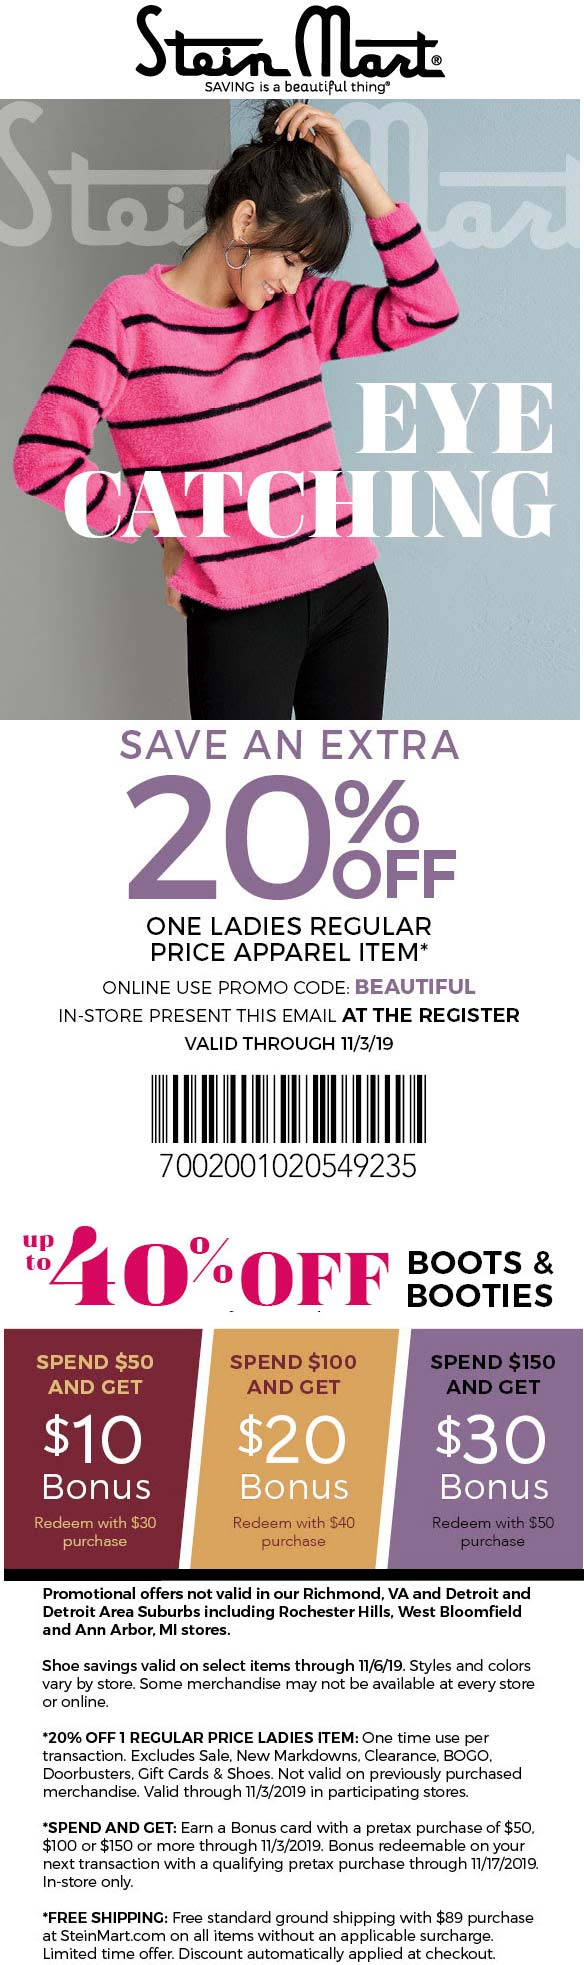 Stein Mart Coupon January 2020 Extra 20% off a single ladies item at Stein Mart, or online via promo code BEAUTIFUL